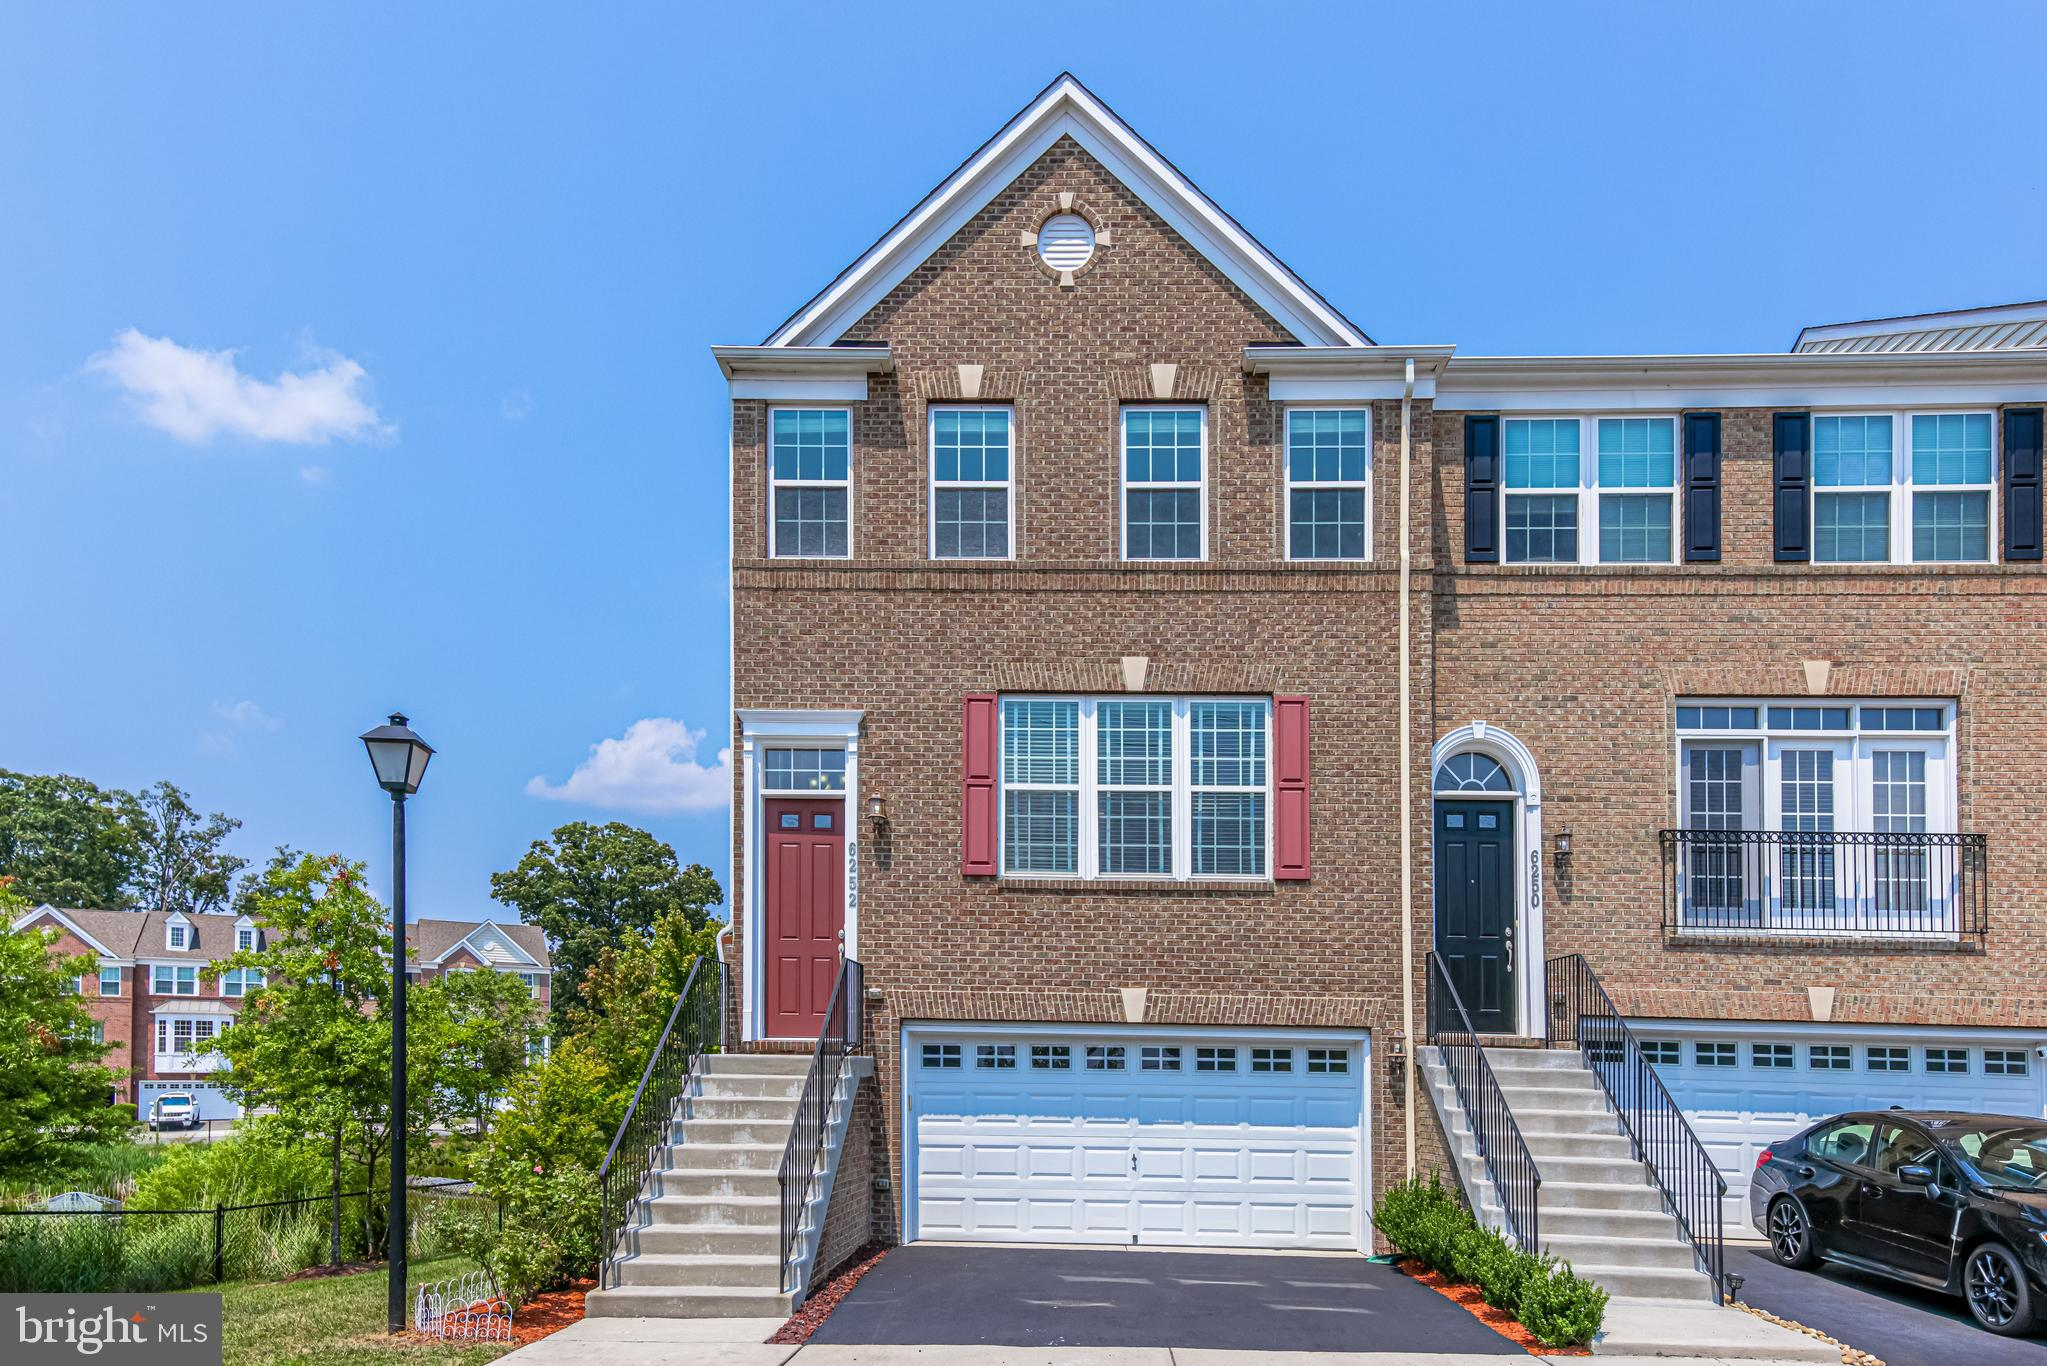 Luxury 3 level 3BR/2.55BA end-unit townhome in the Fosters Crest enclave in Alexandria, VA - Move-in